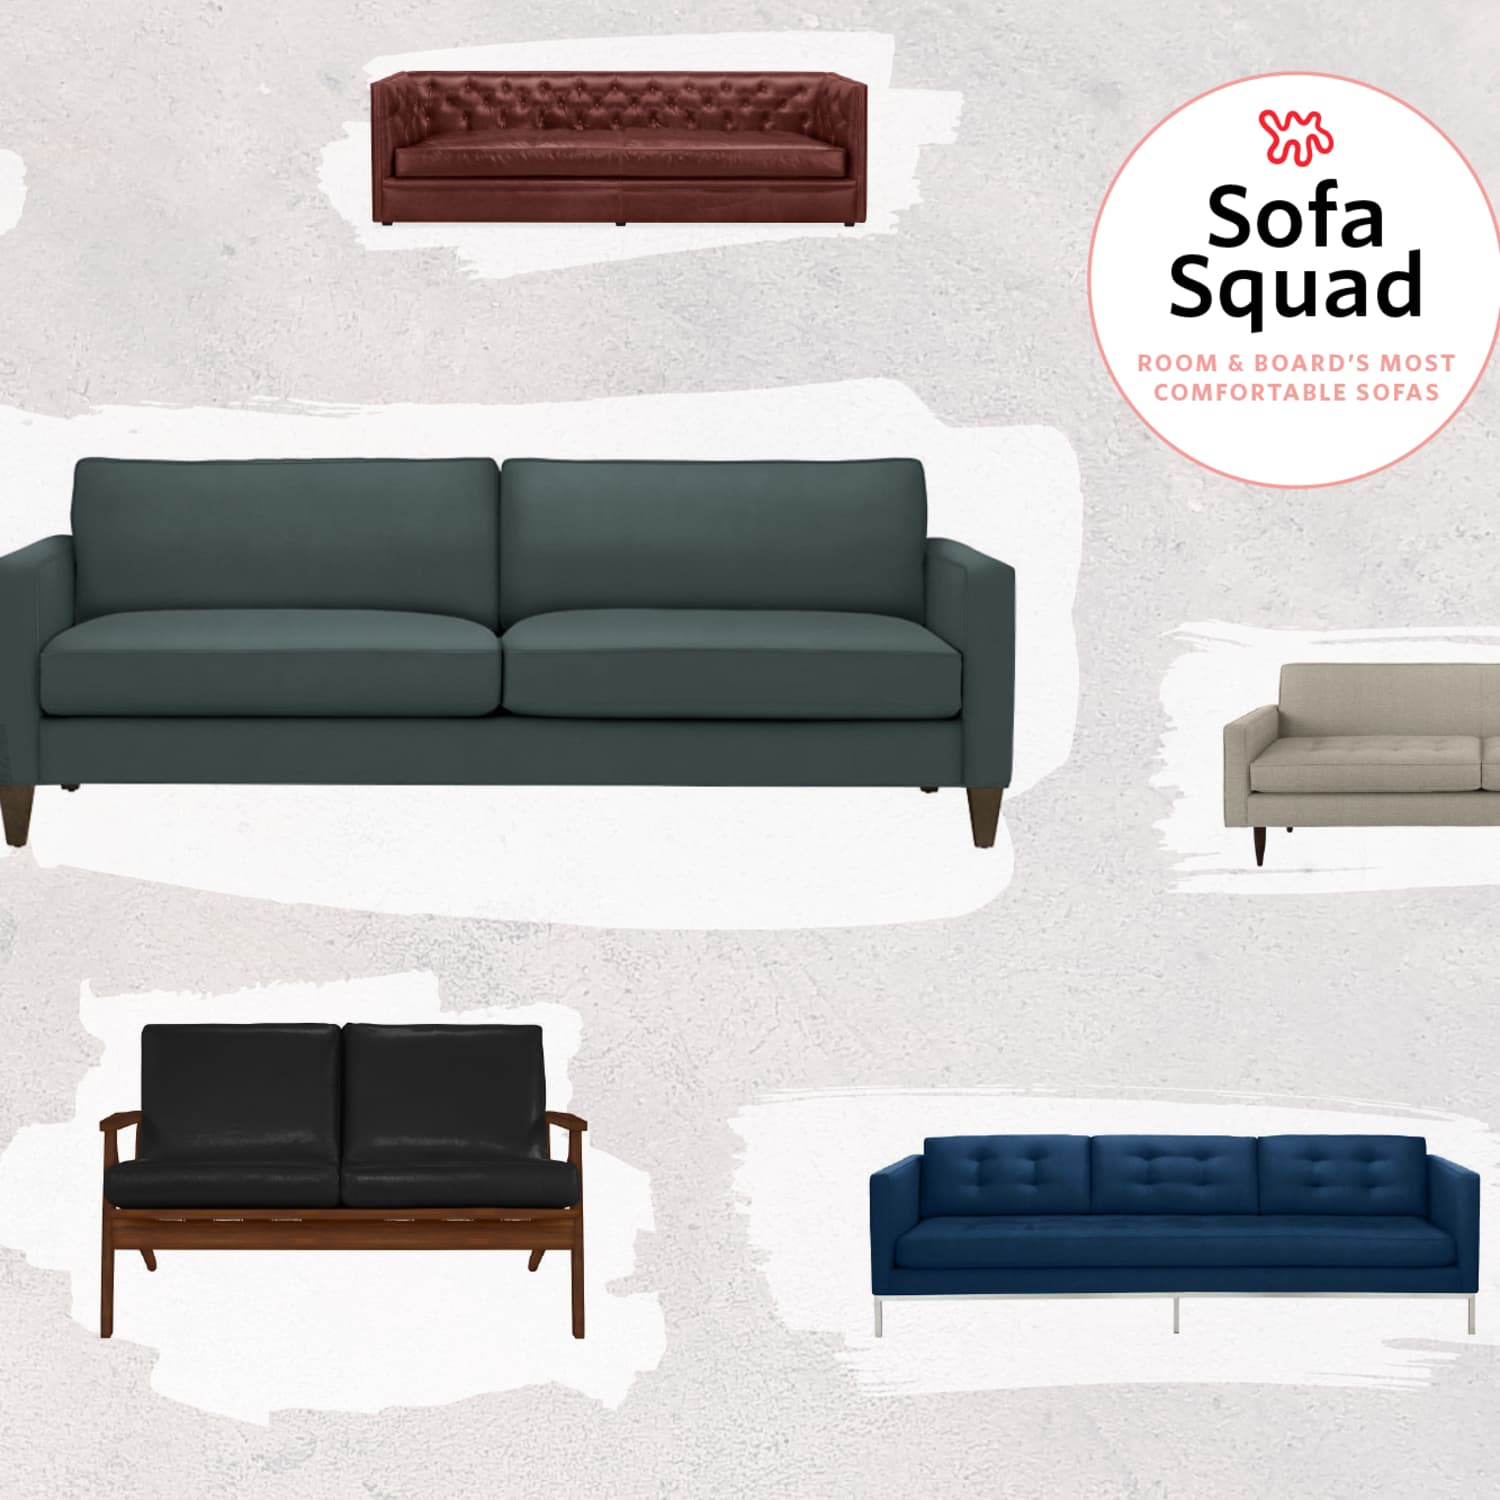 - The Most Comfortable Sofas At Room & Board Apartment Therapy